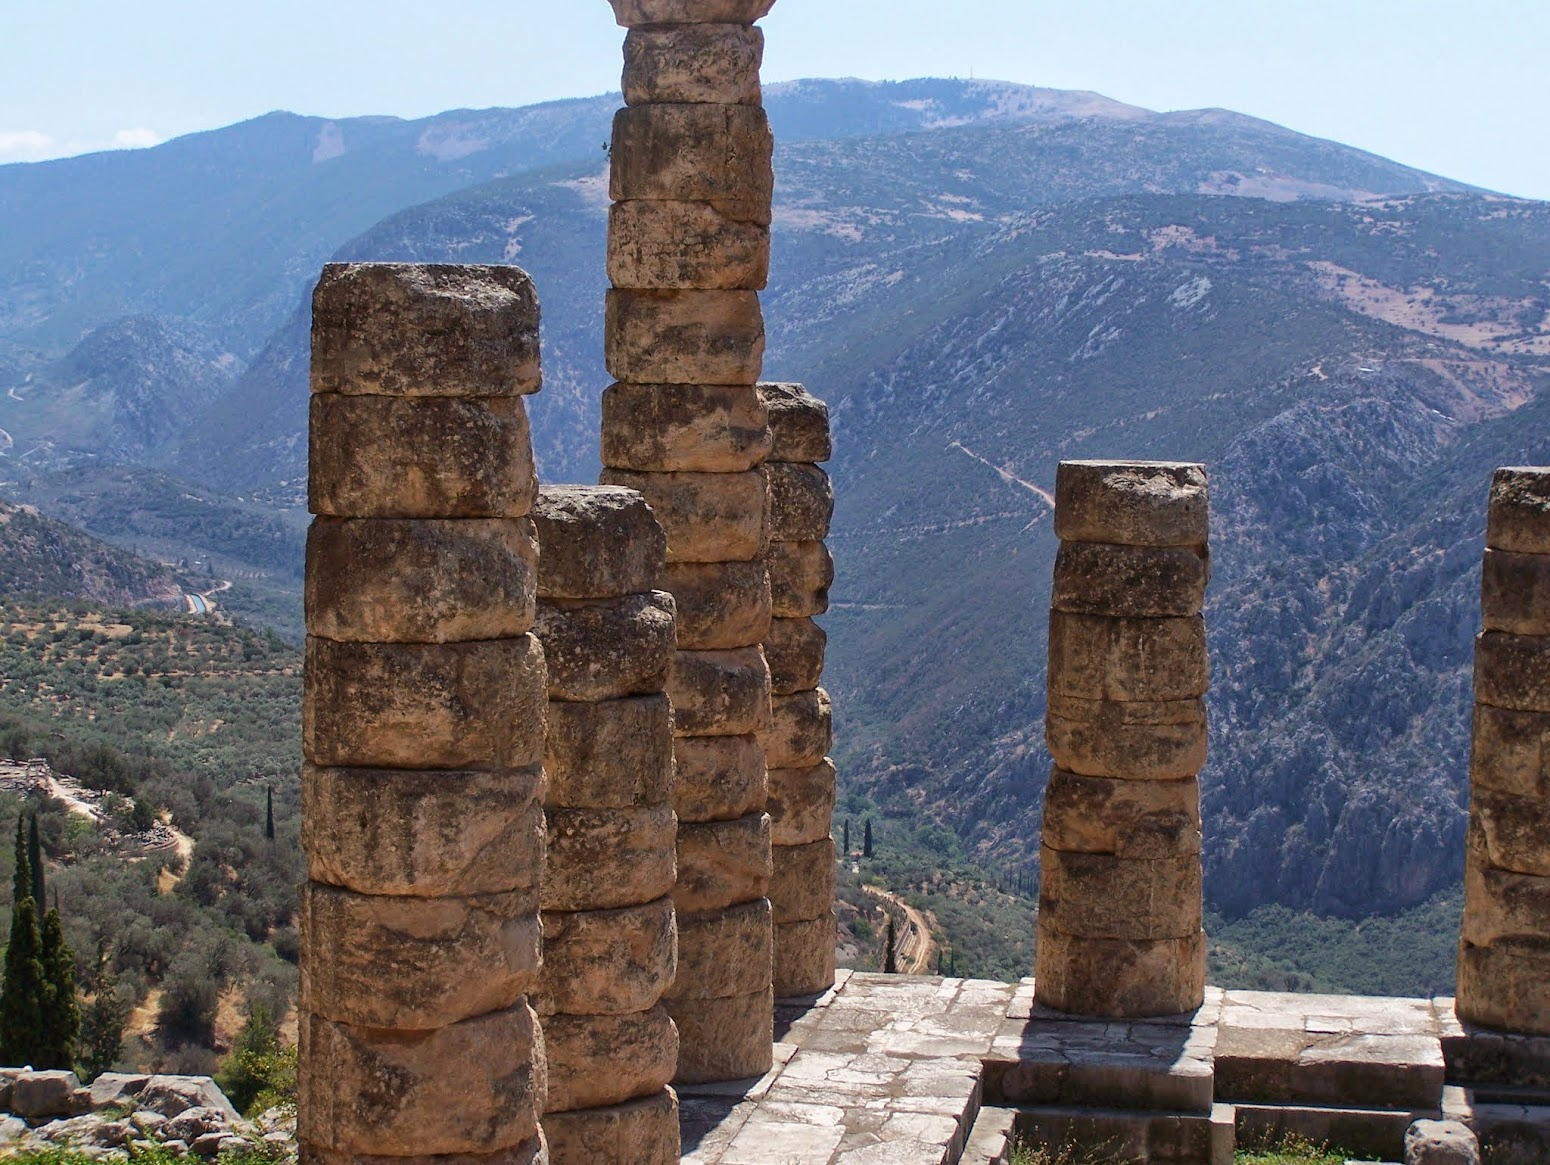 The Ruins of the Oracle at Delphi